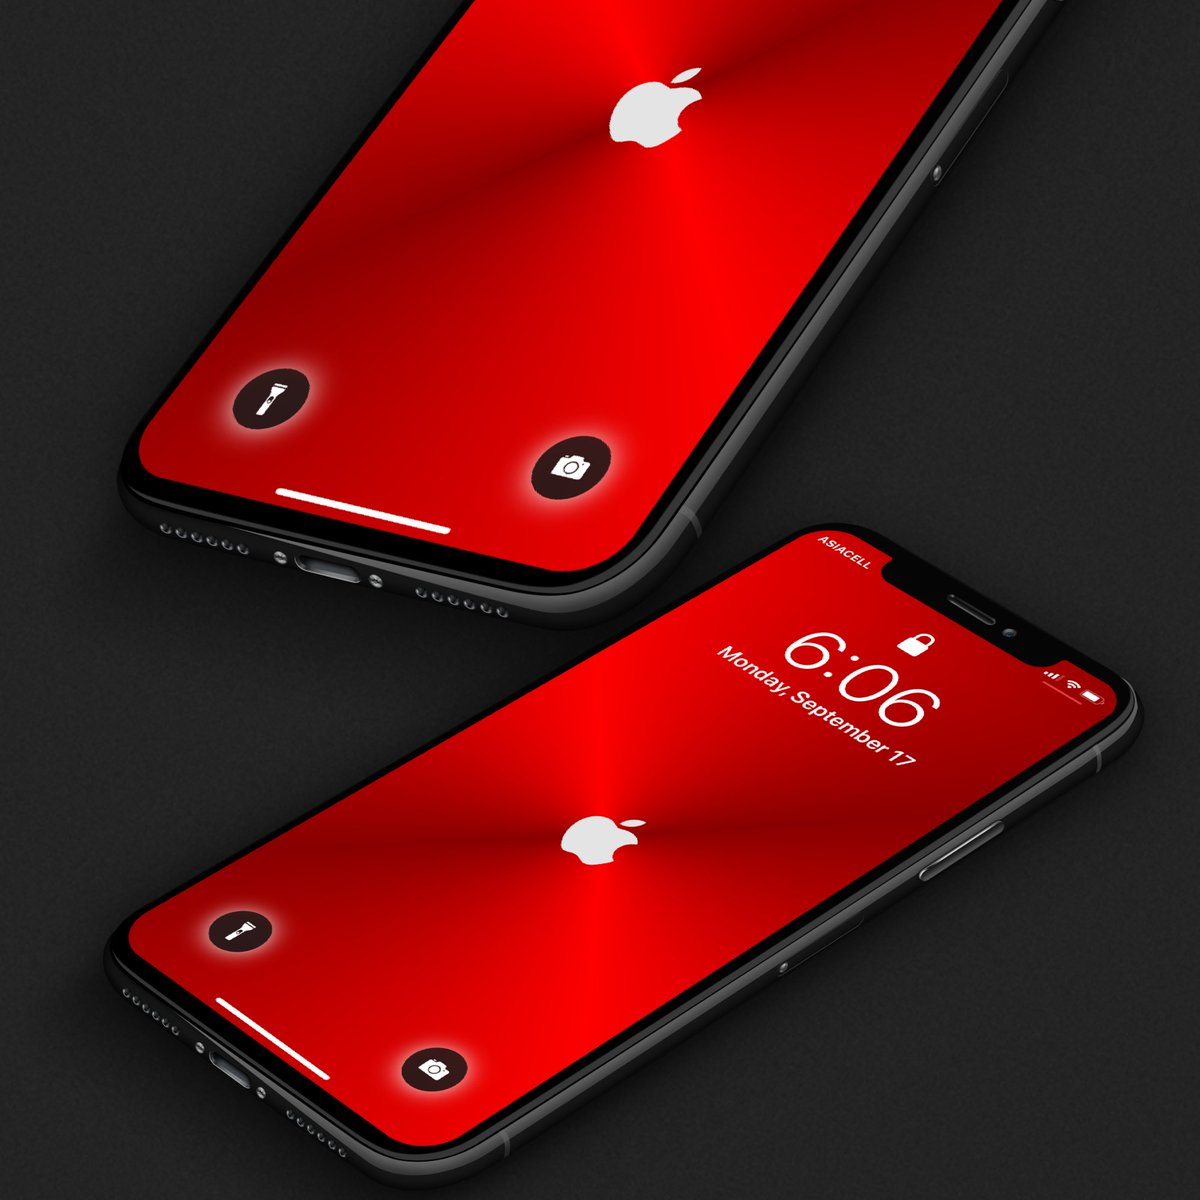 ˇ ˇ On Twitter Making New Red Apple Logo Wallpaper Available In